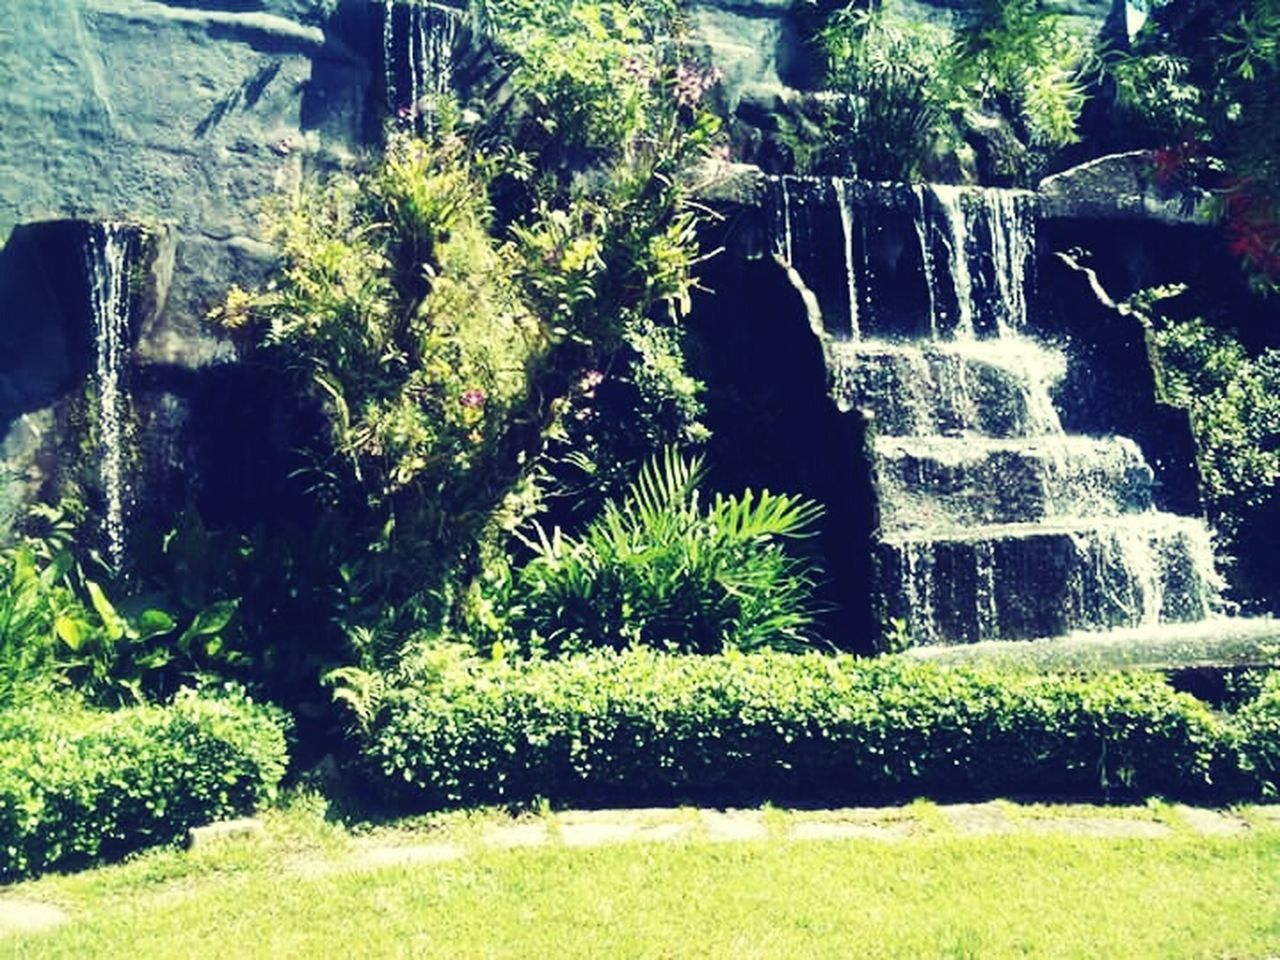 nature, plant, growth, outdoors, beauty in nature, water, motion, day, no people, green color, spraying, waterfall, scenics, architecture, grass, freshness